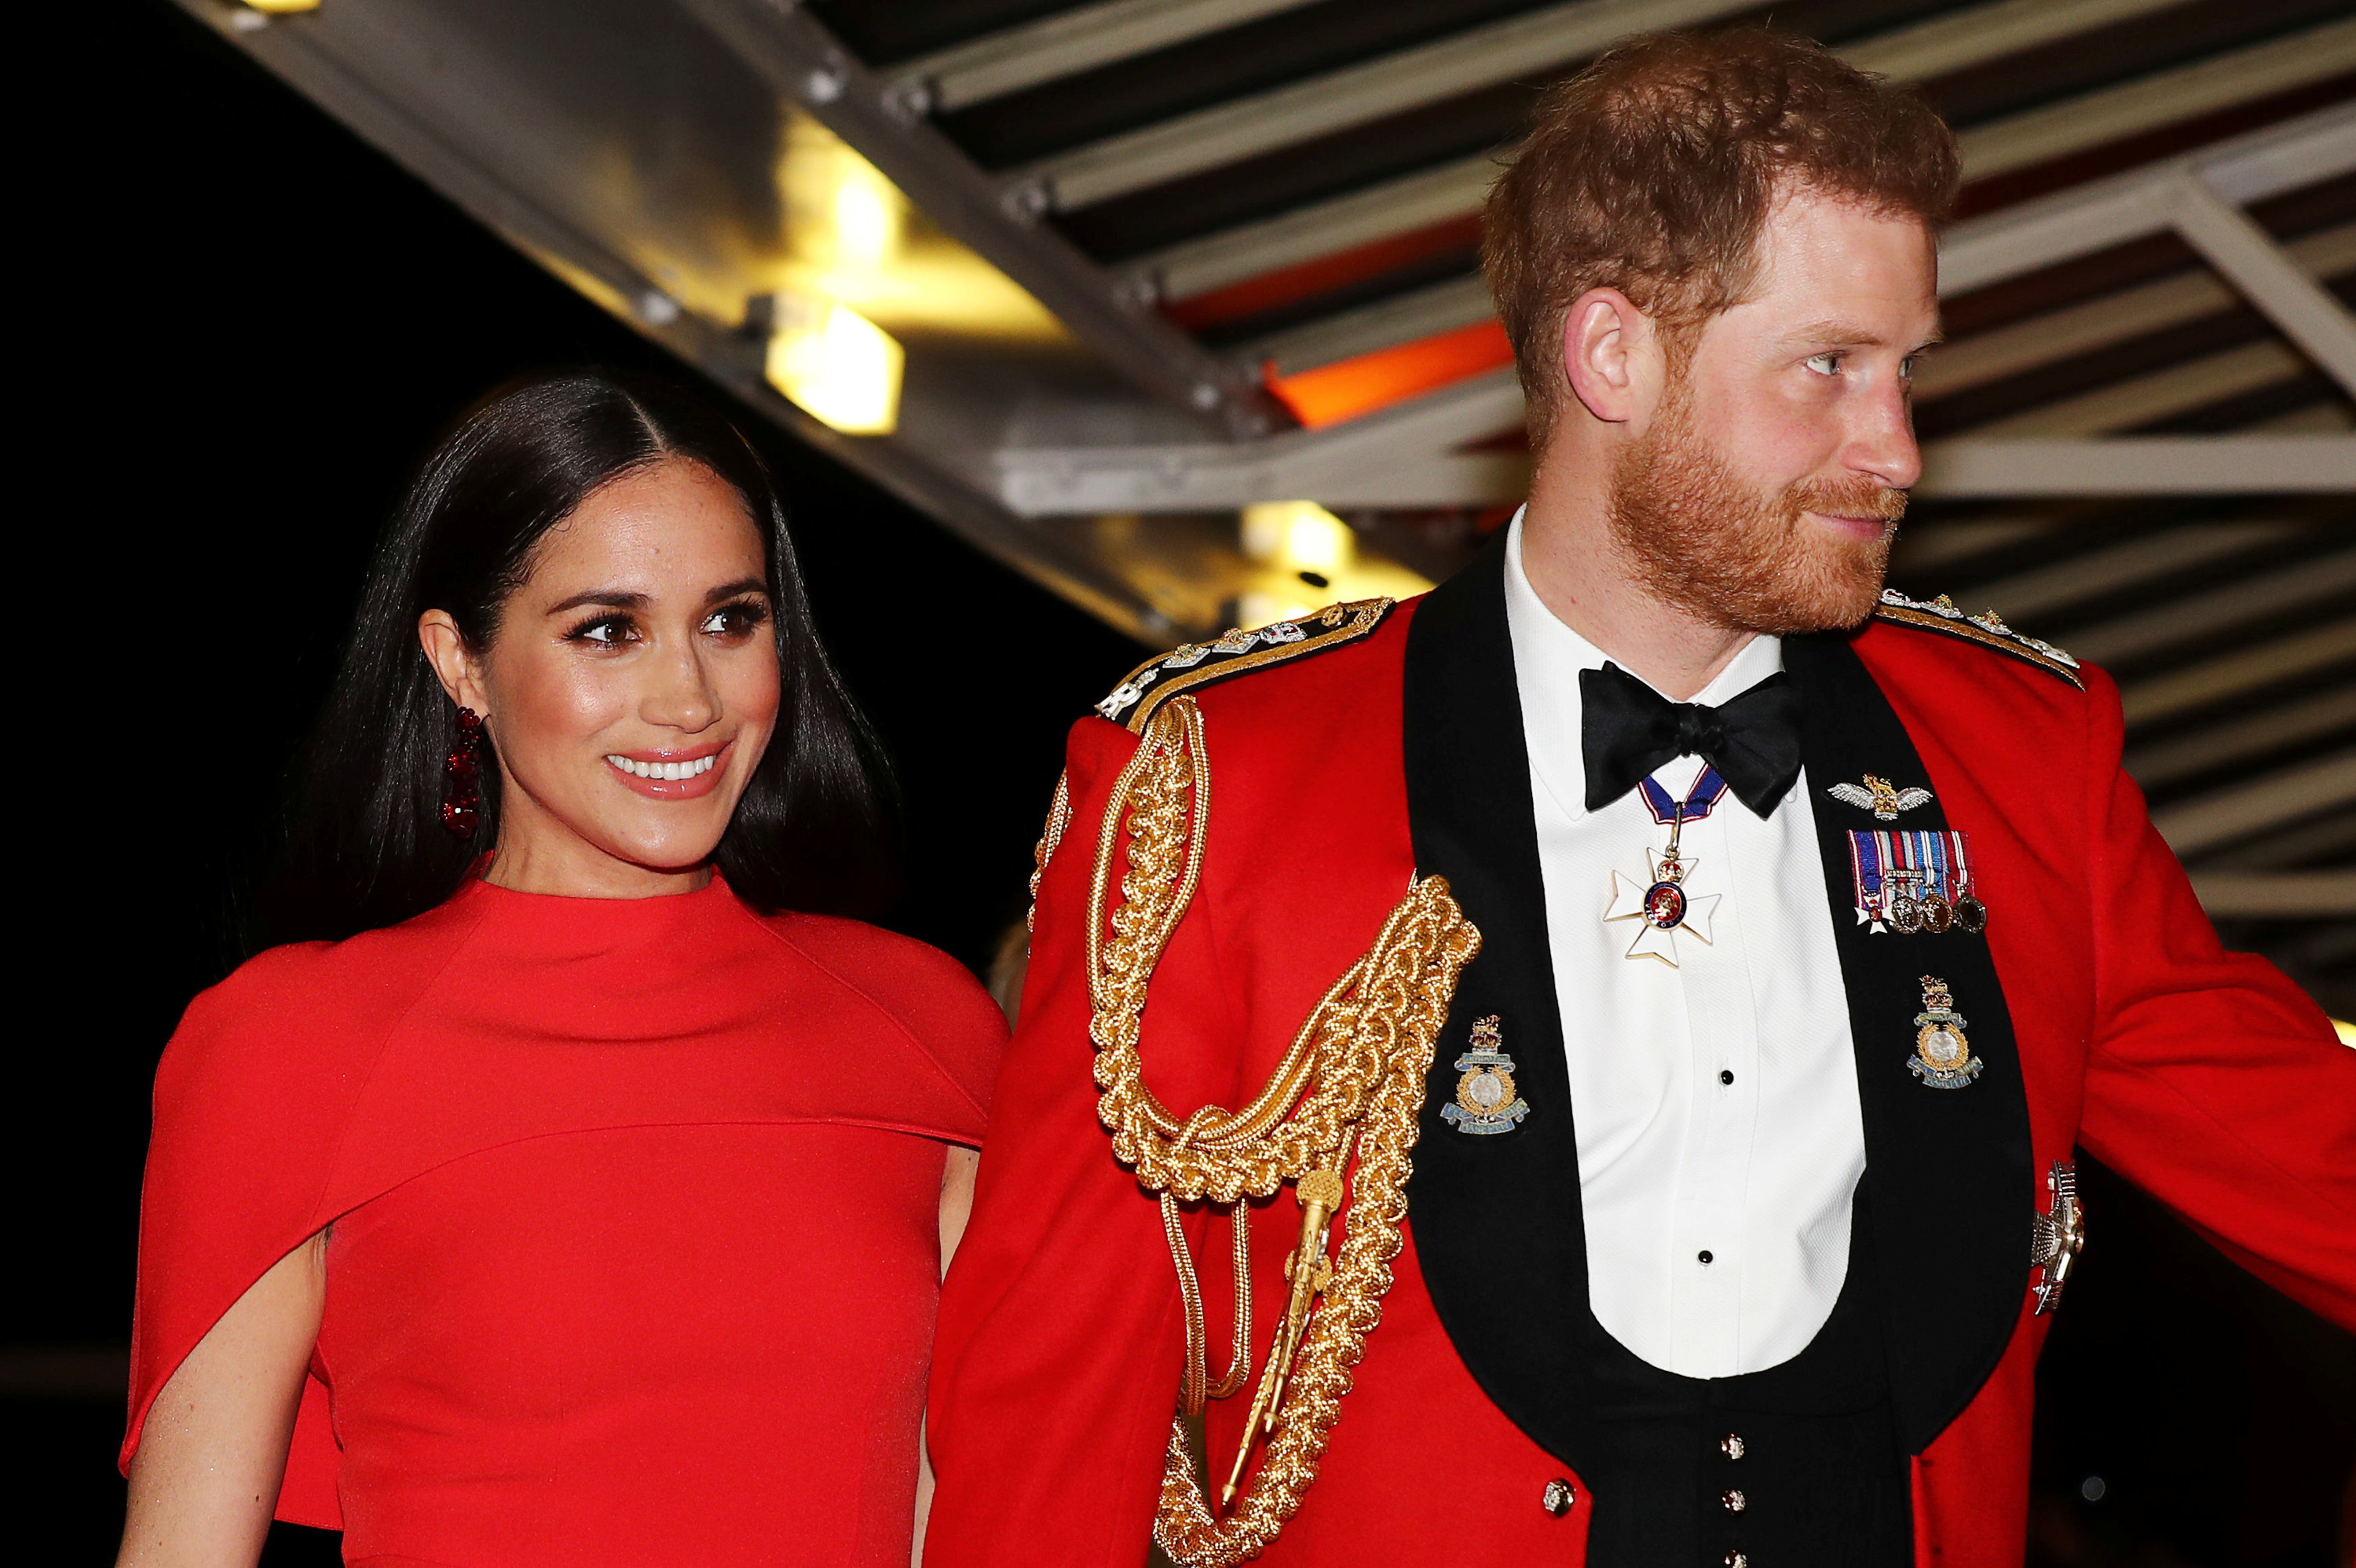 Meghan smiles in a red dress at a formal event with Harry